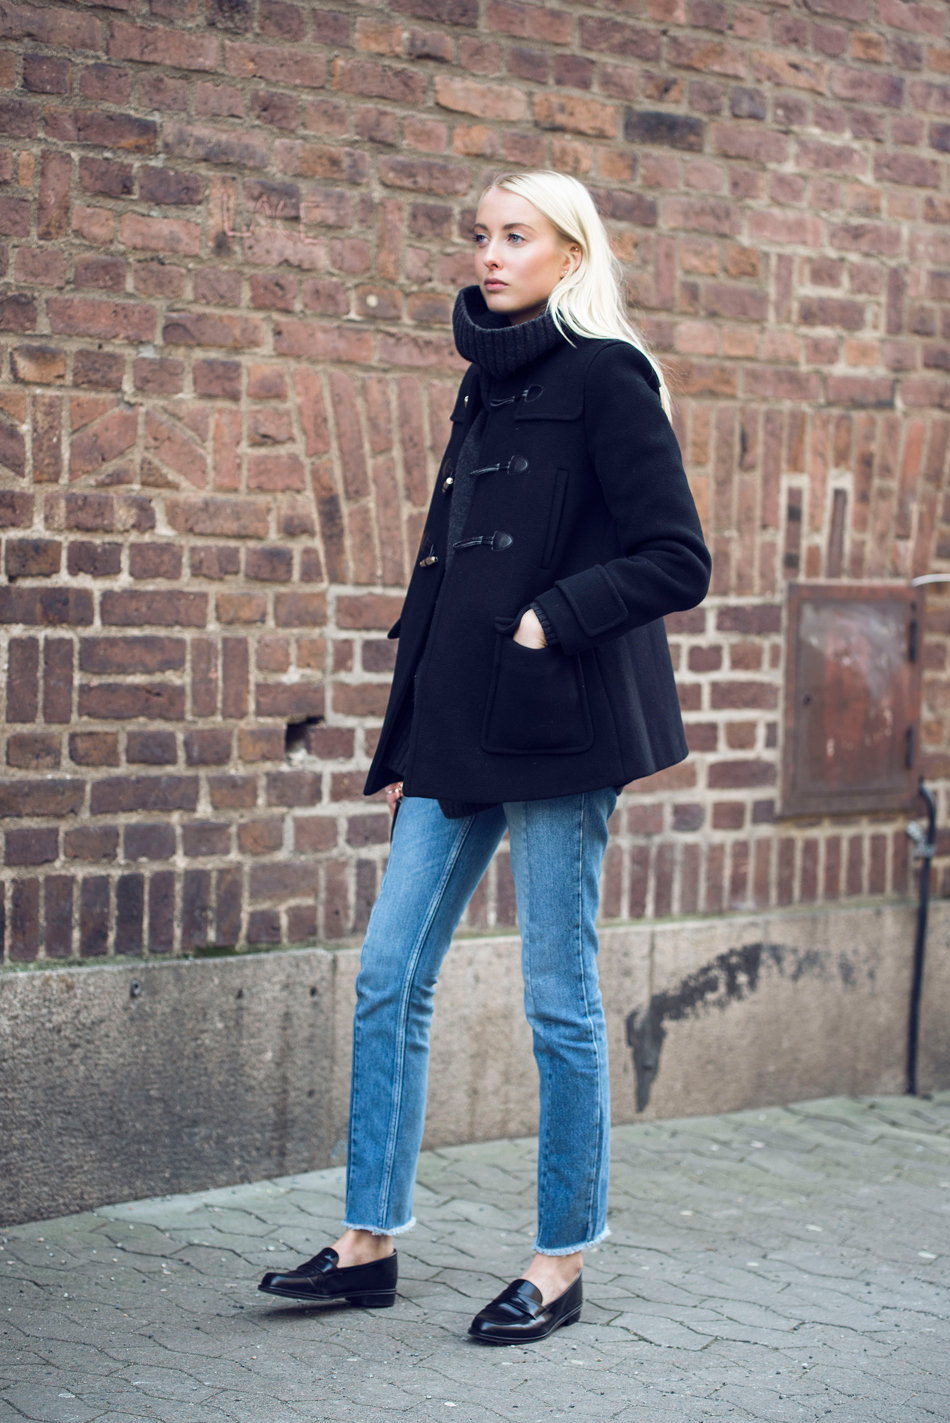 Rock the classic retro style by combining an everyday outfit with a pair of penny loafers. Ellen Claesson wears jeans and a cute duffle coat with these stylish navy loafers; making for an overall stylish and casual look. Jacket/Jeans: Sandro Paris, Turtleneck: Ralph Lauren, Loafers: Nilsson.